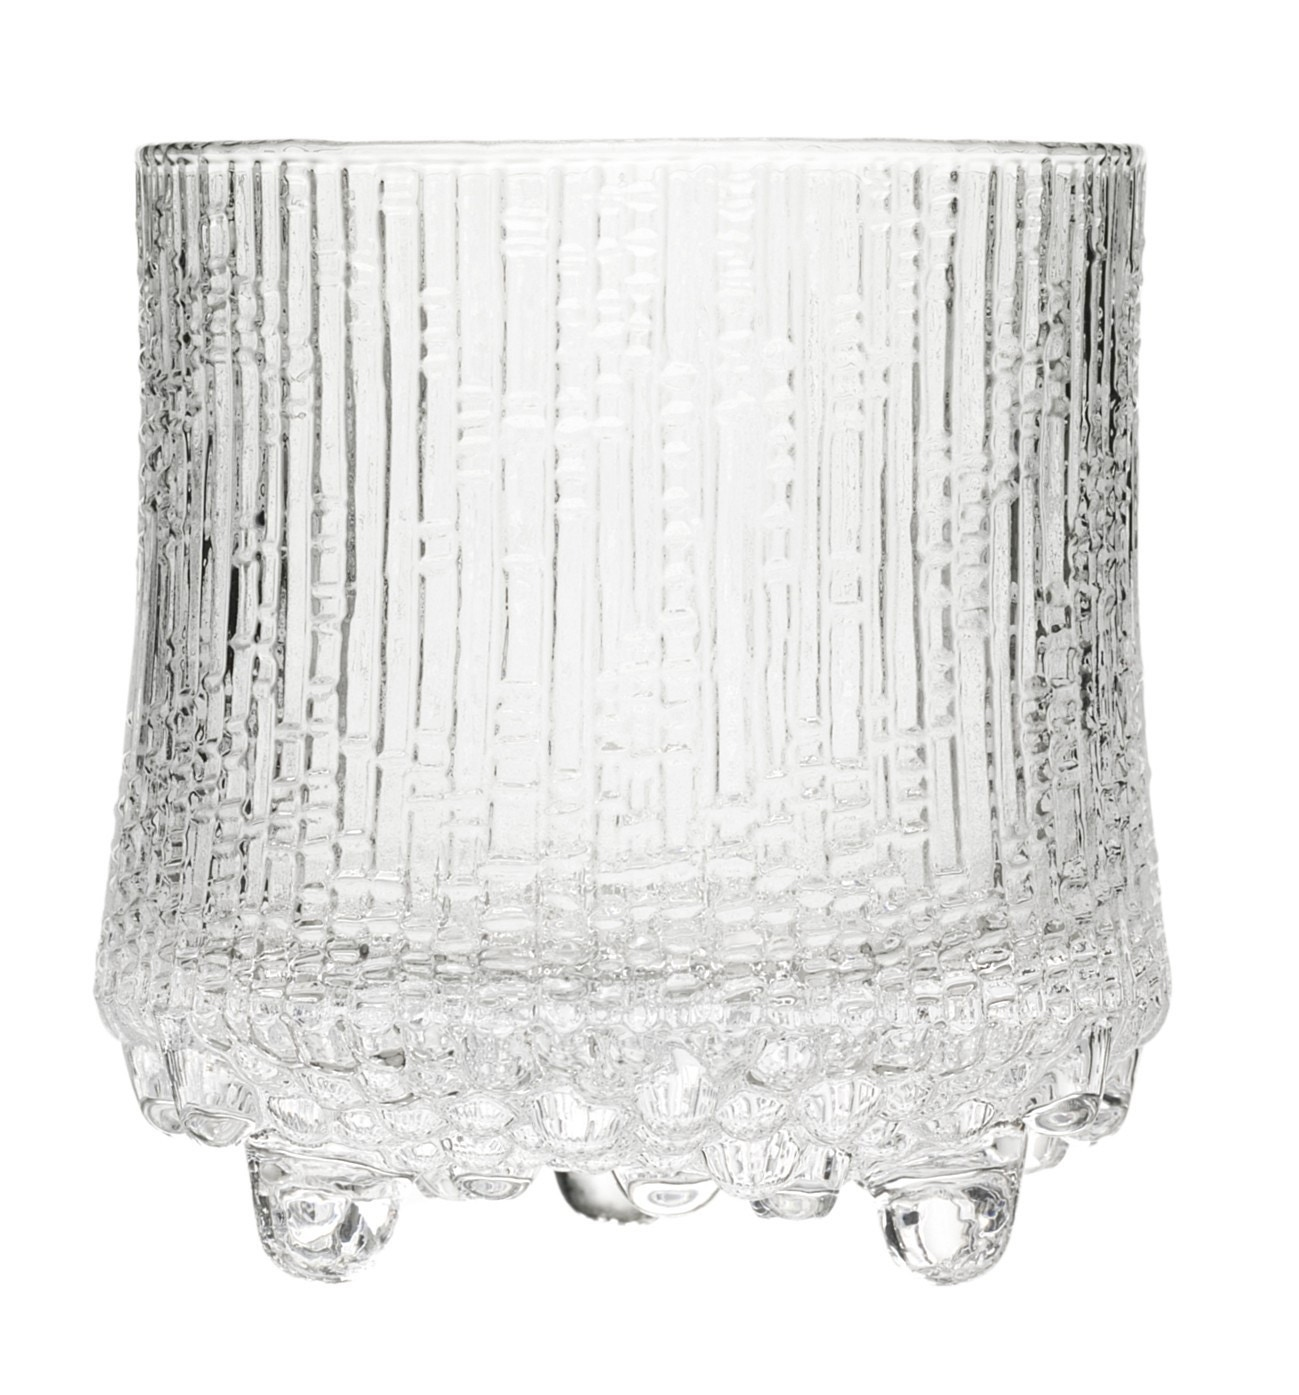 Iittala Ultima Thule Double Old Fashioned Glasses (Set of 2)